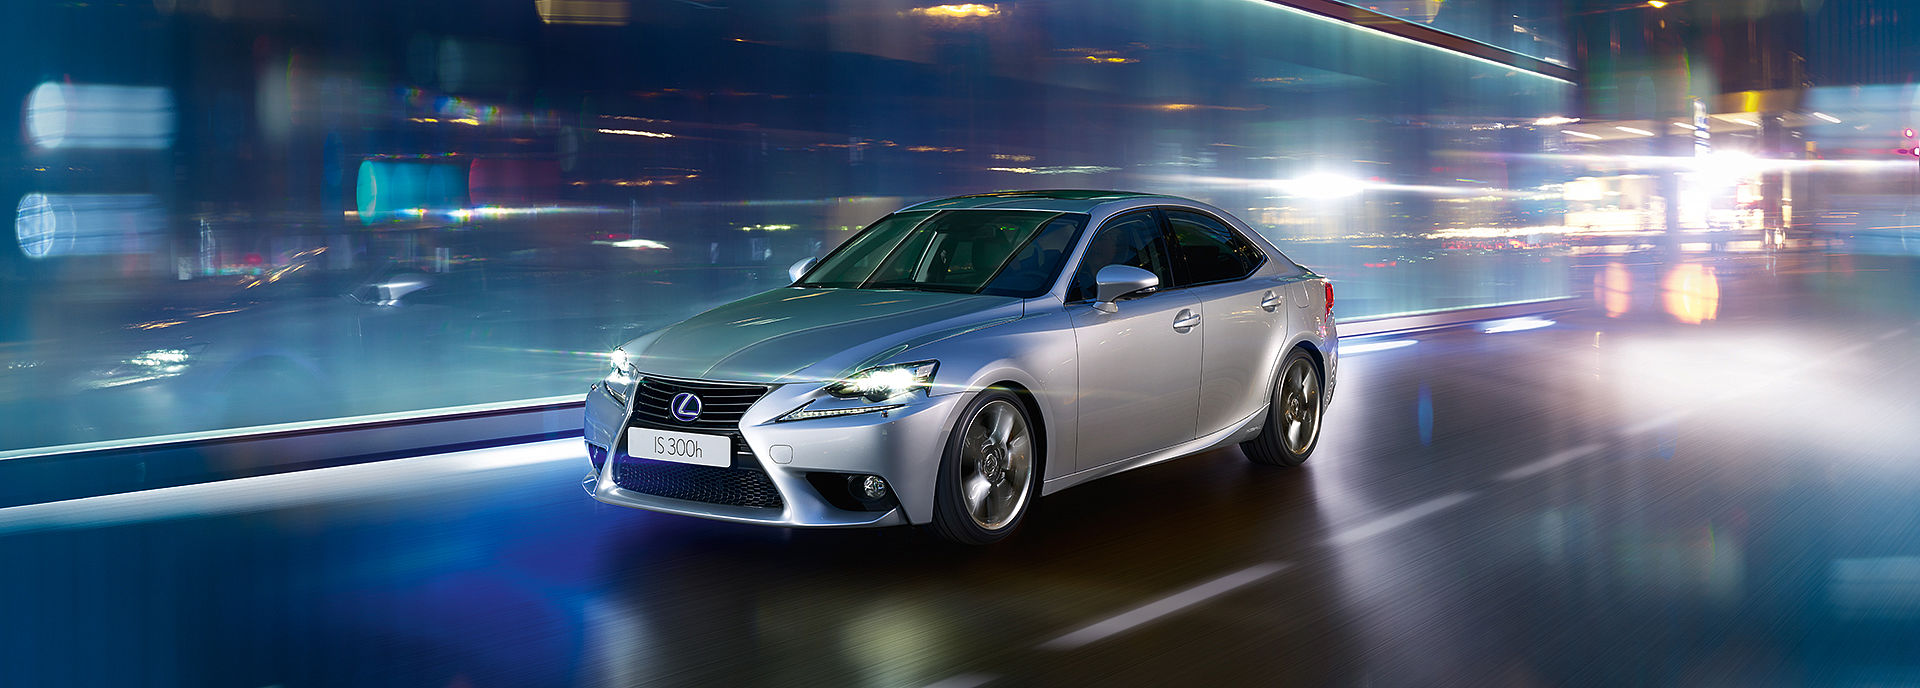 left in ab car for series image front view calgary automobiles ultra used lexus details sale f photo sport door interior is awd white